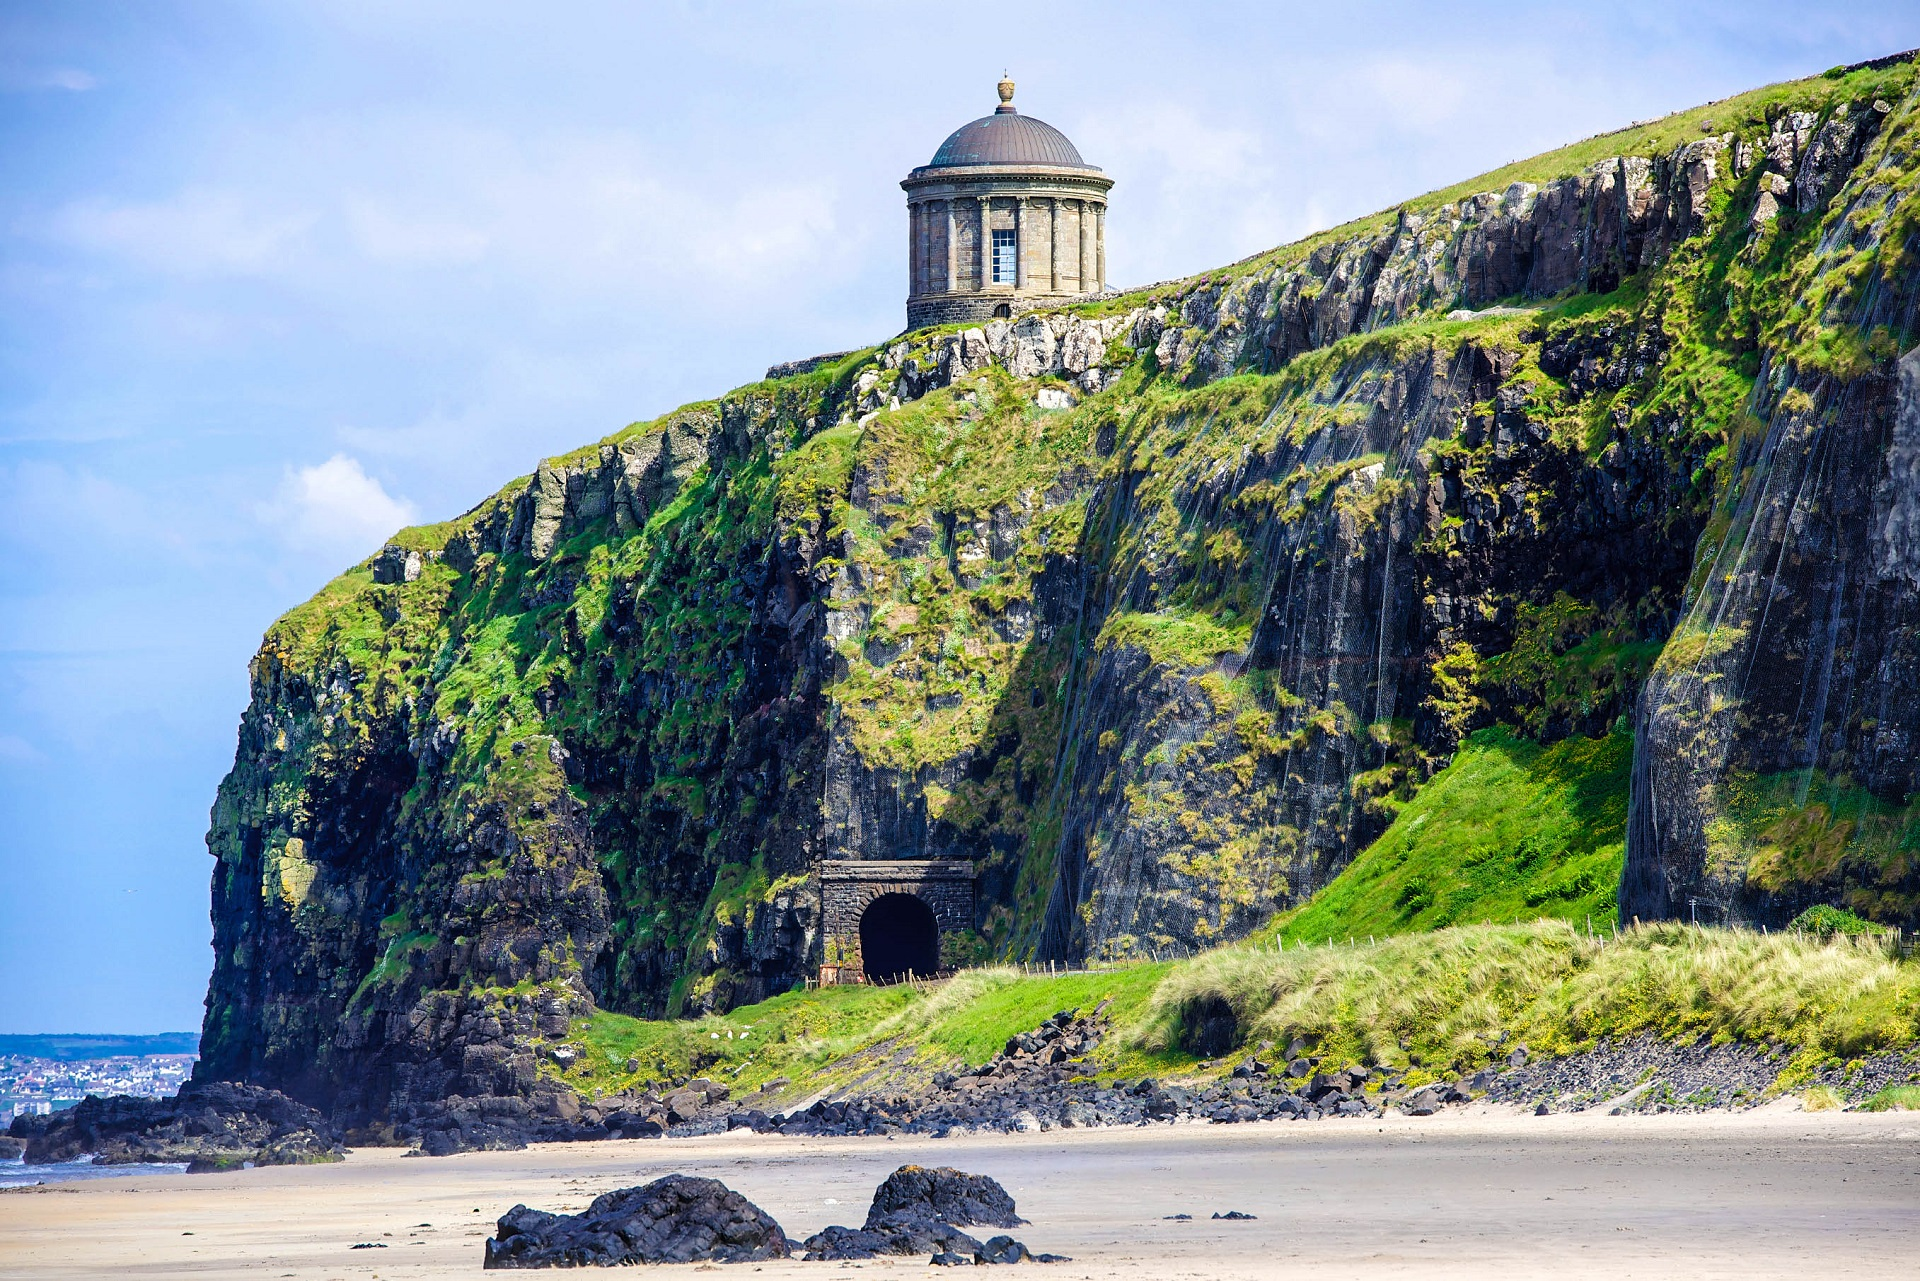 Nordirland Game of Thrones Drehorte Mussenden Tempel